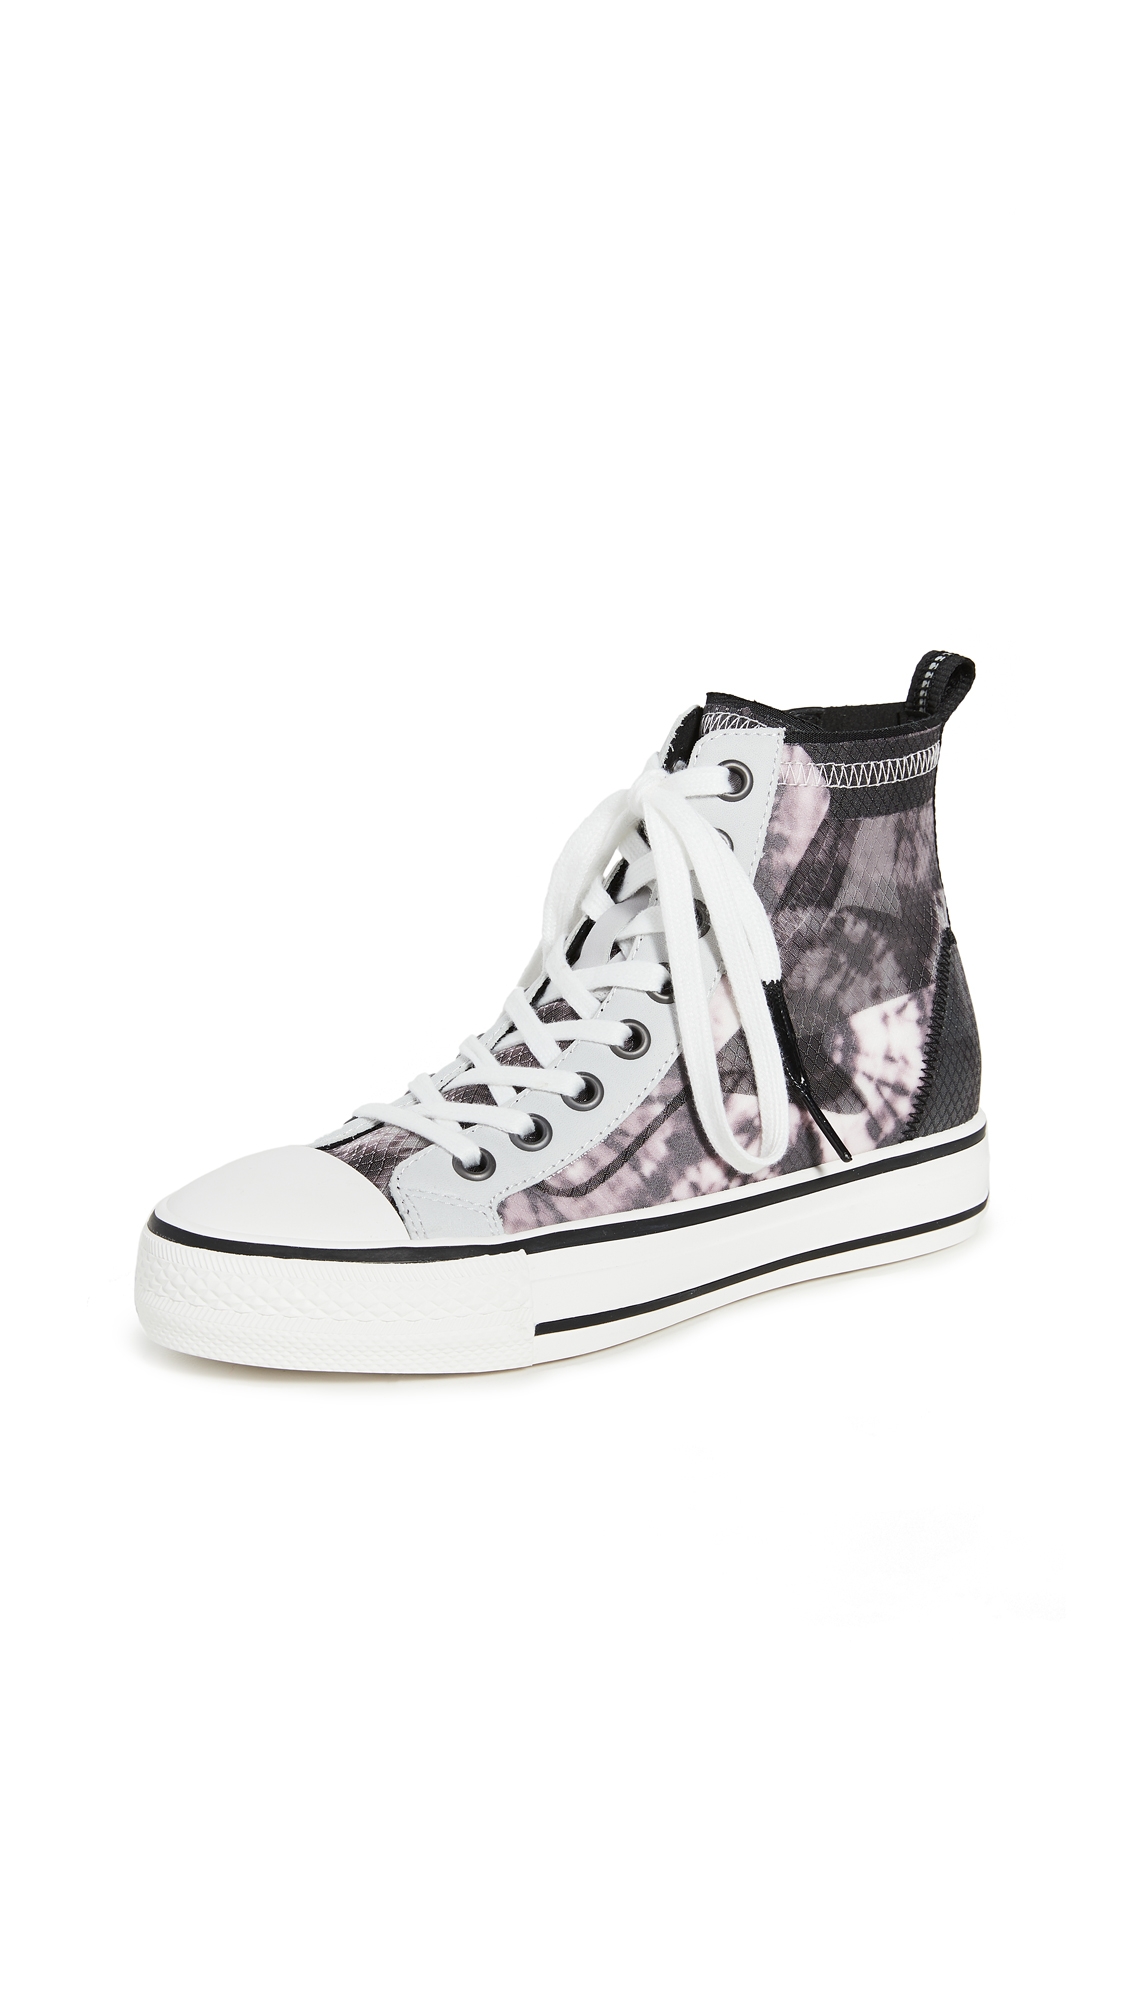 Ash Gasper High Top Sneakers – 40% Off Sale